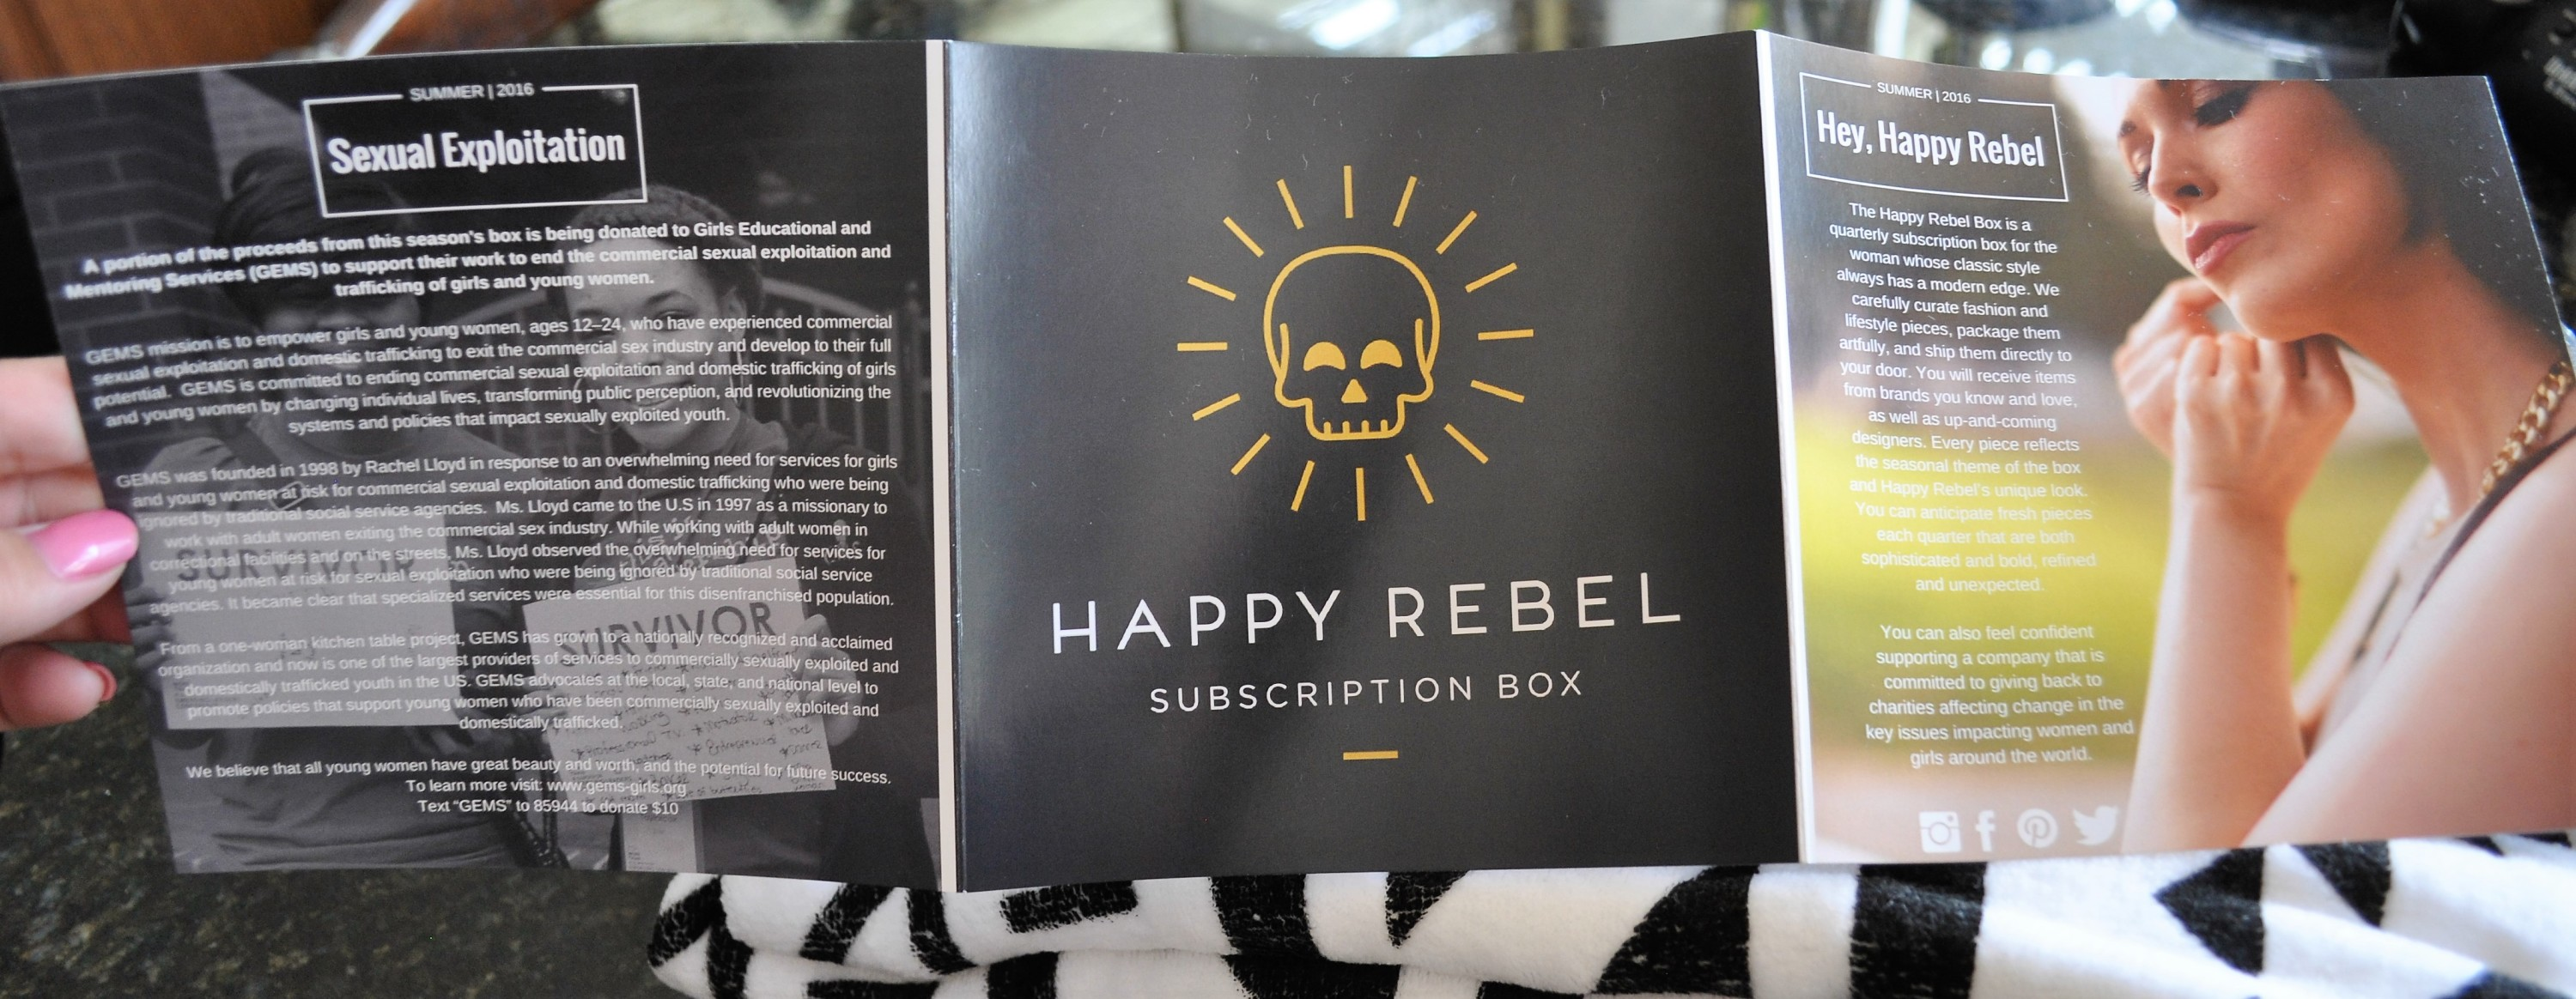 Happy Rebel Box Summer 2016 Insert 1